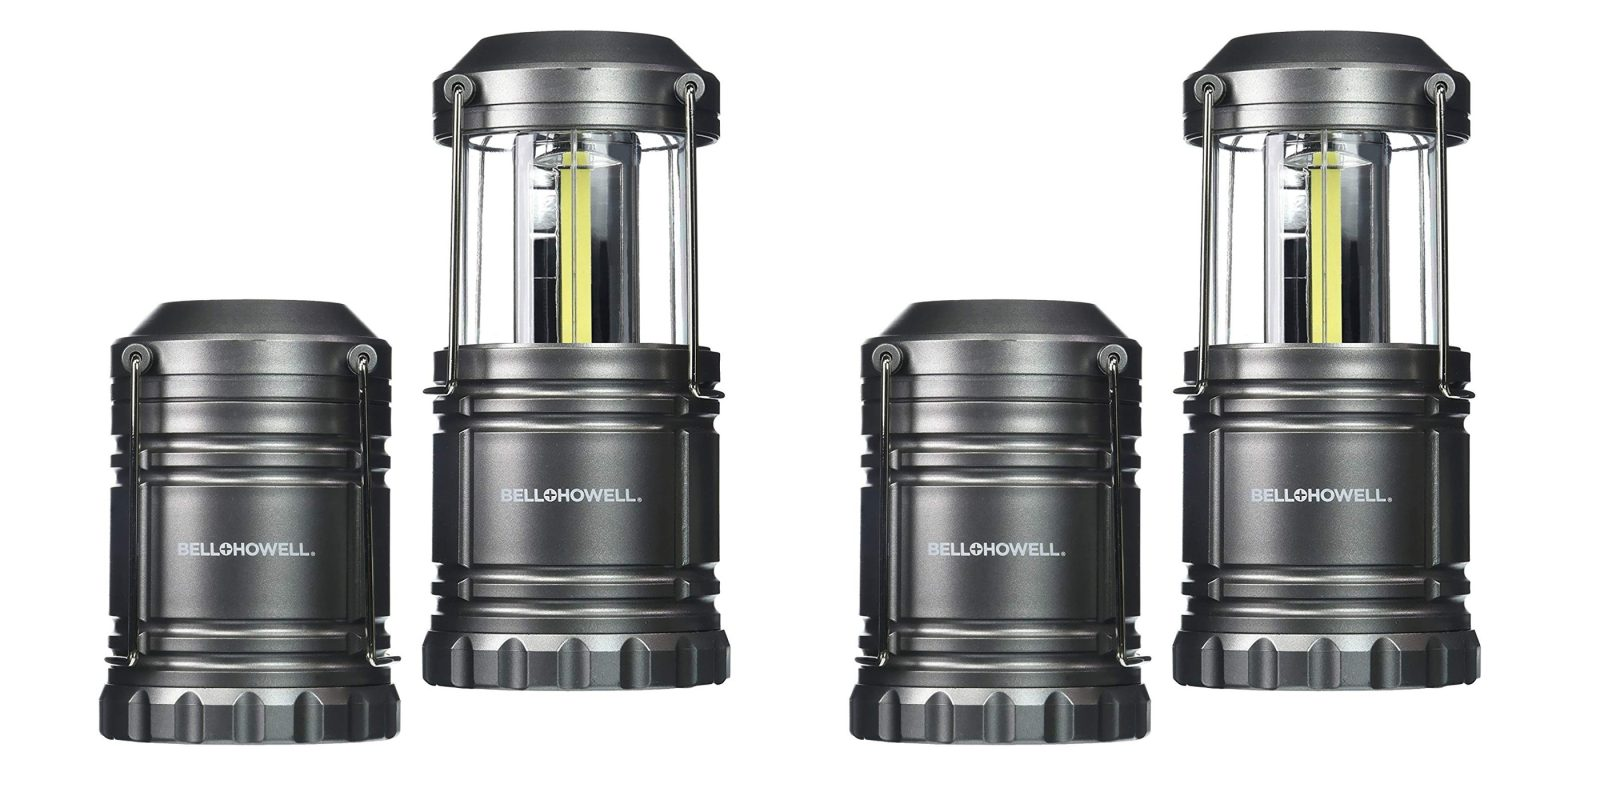 Take Bell + Howell's Taclight LED Lantern on your next